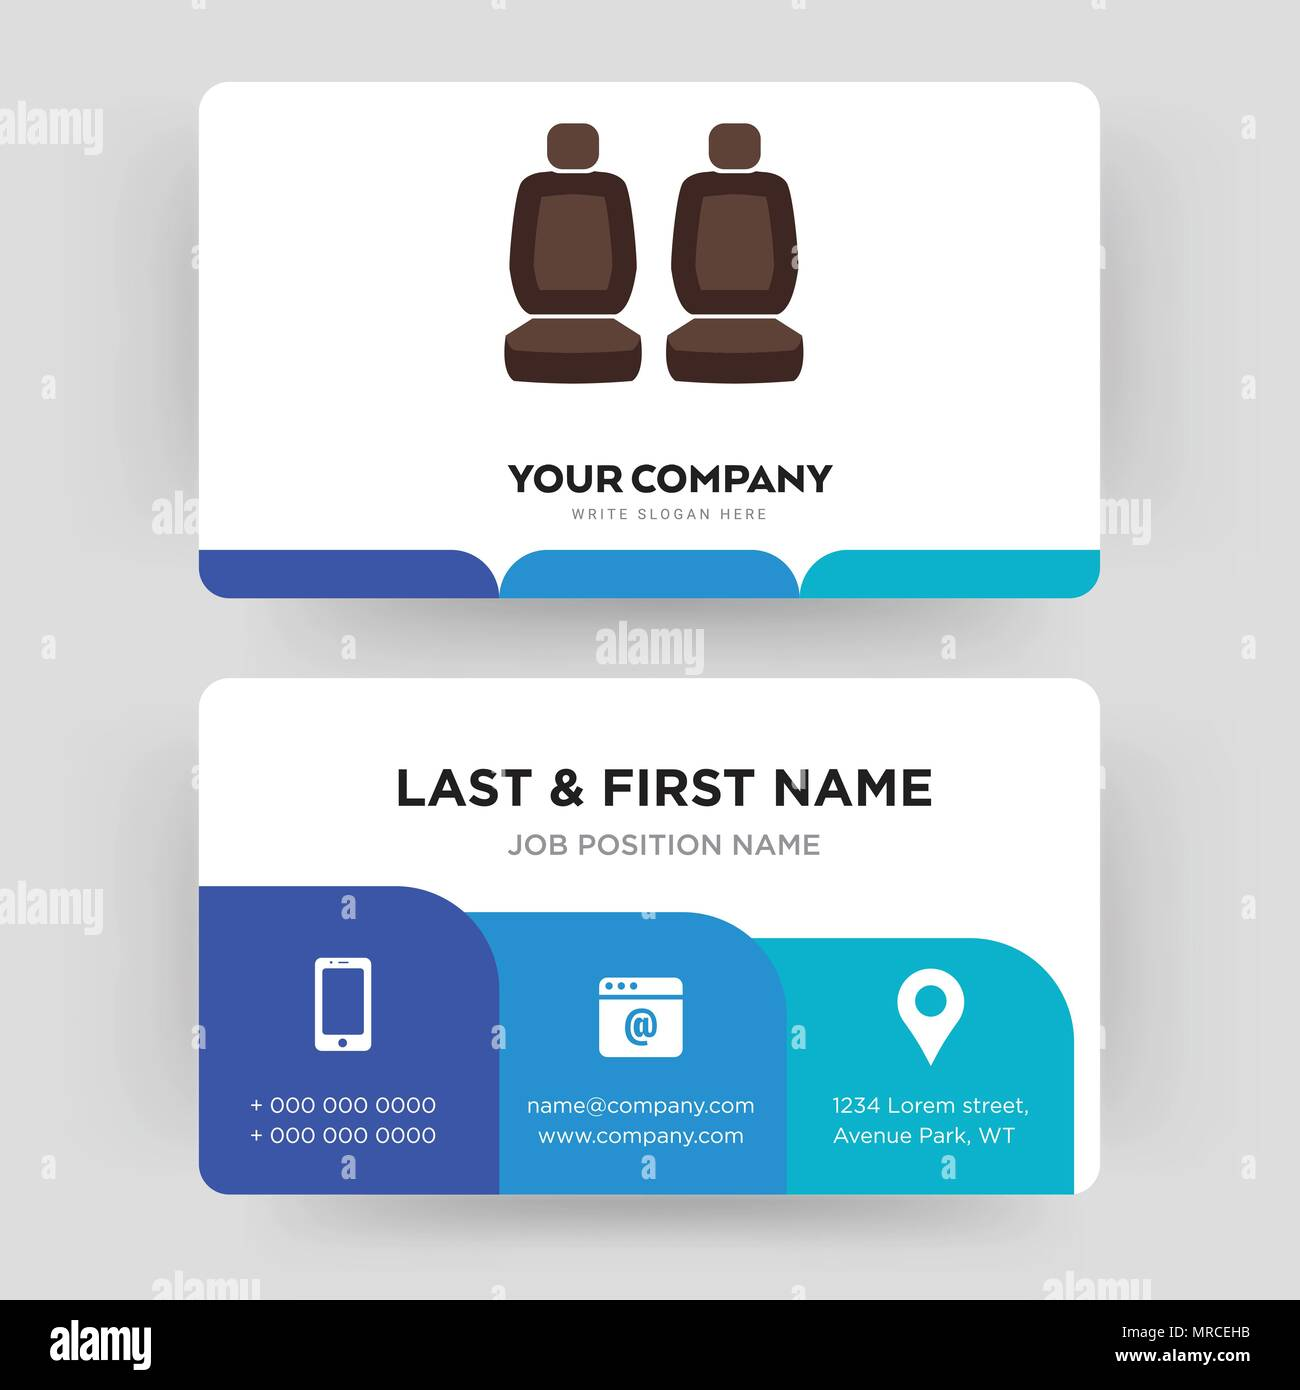 car seat business card design template visiting for your company